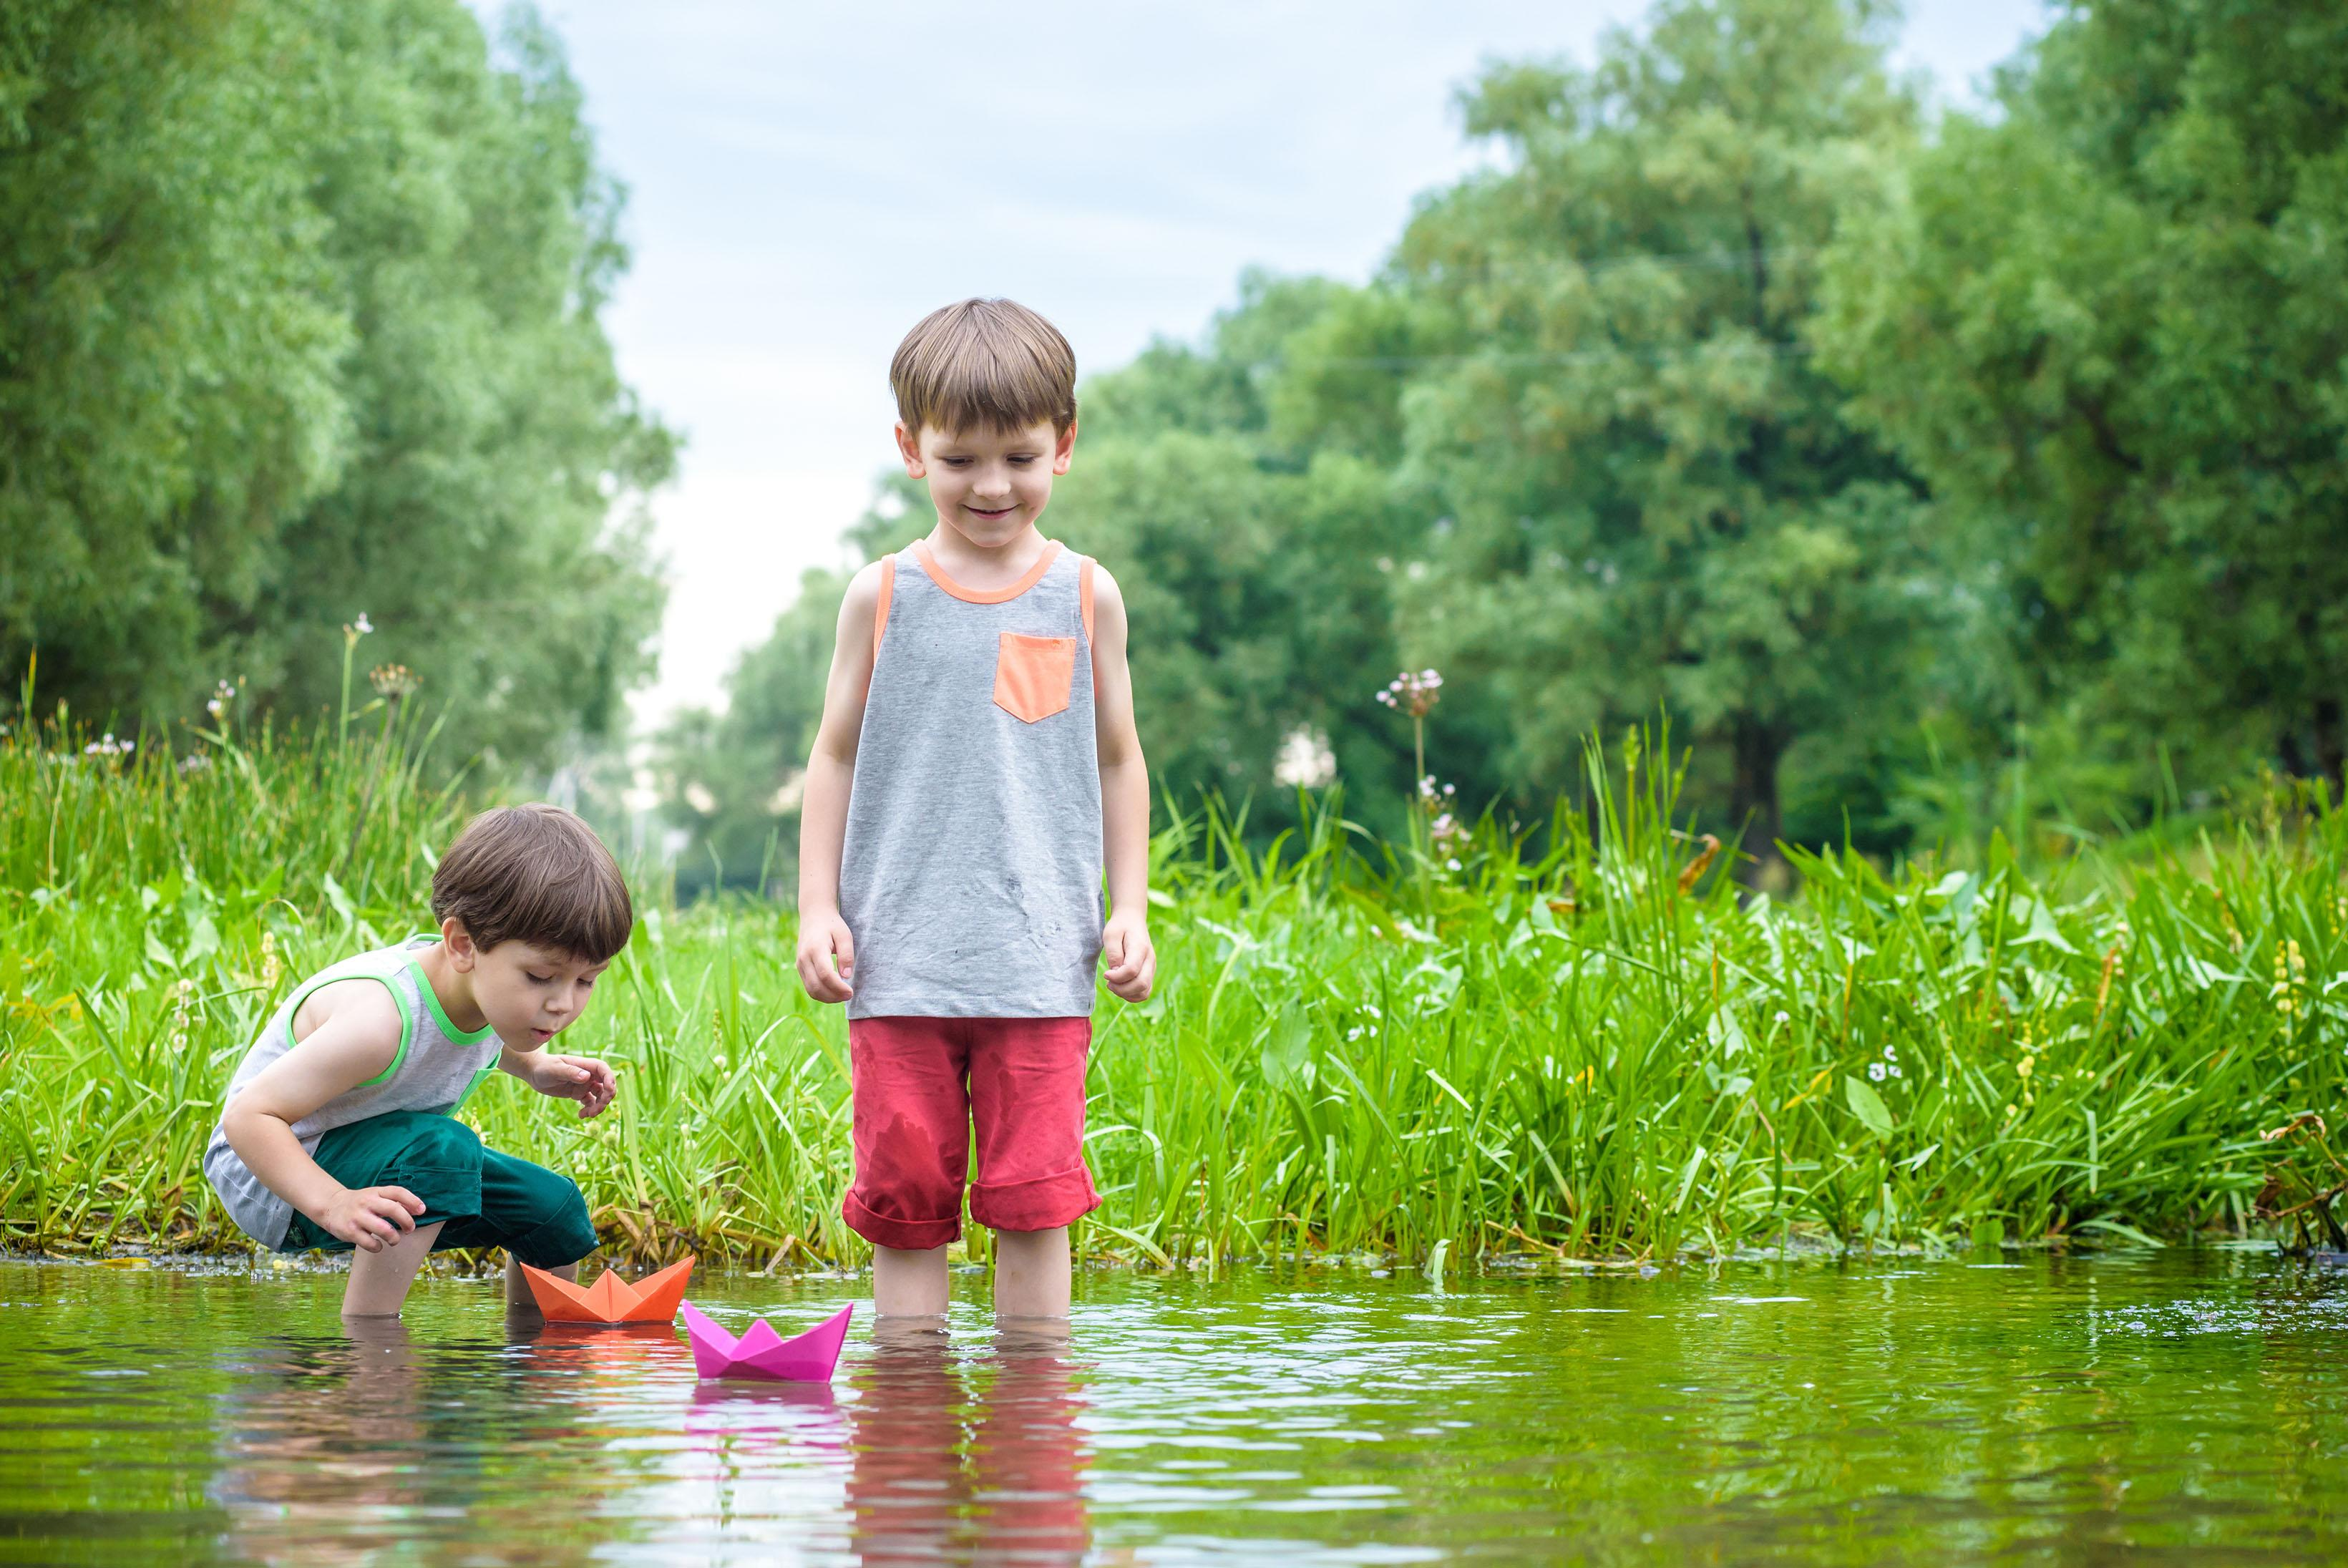 The 4 best outdoor activities for kids